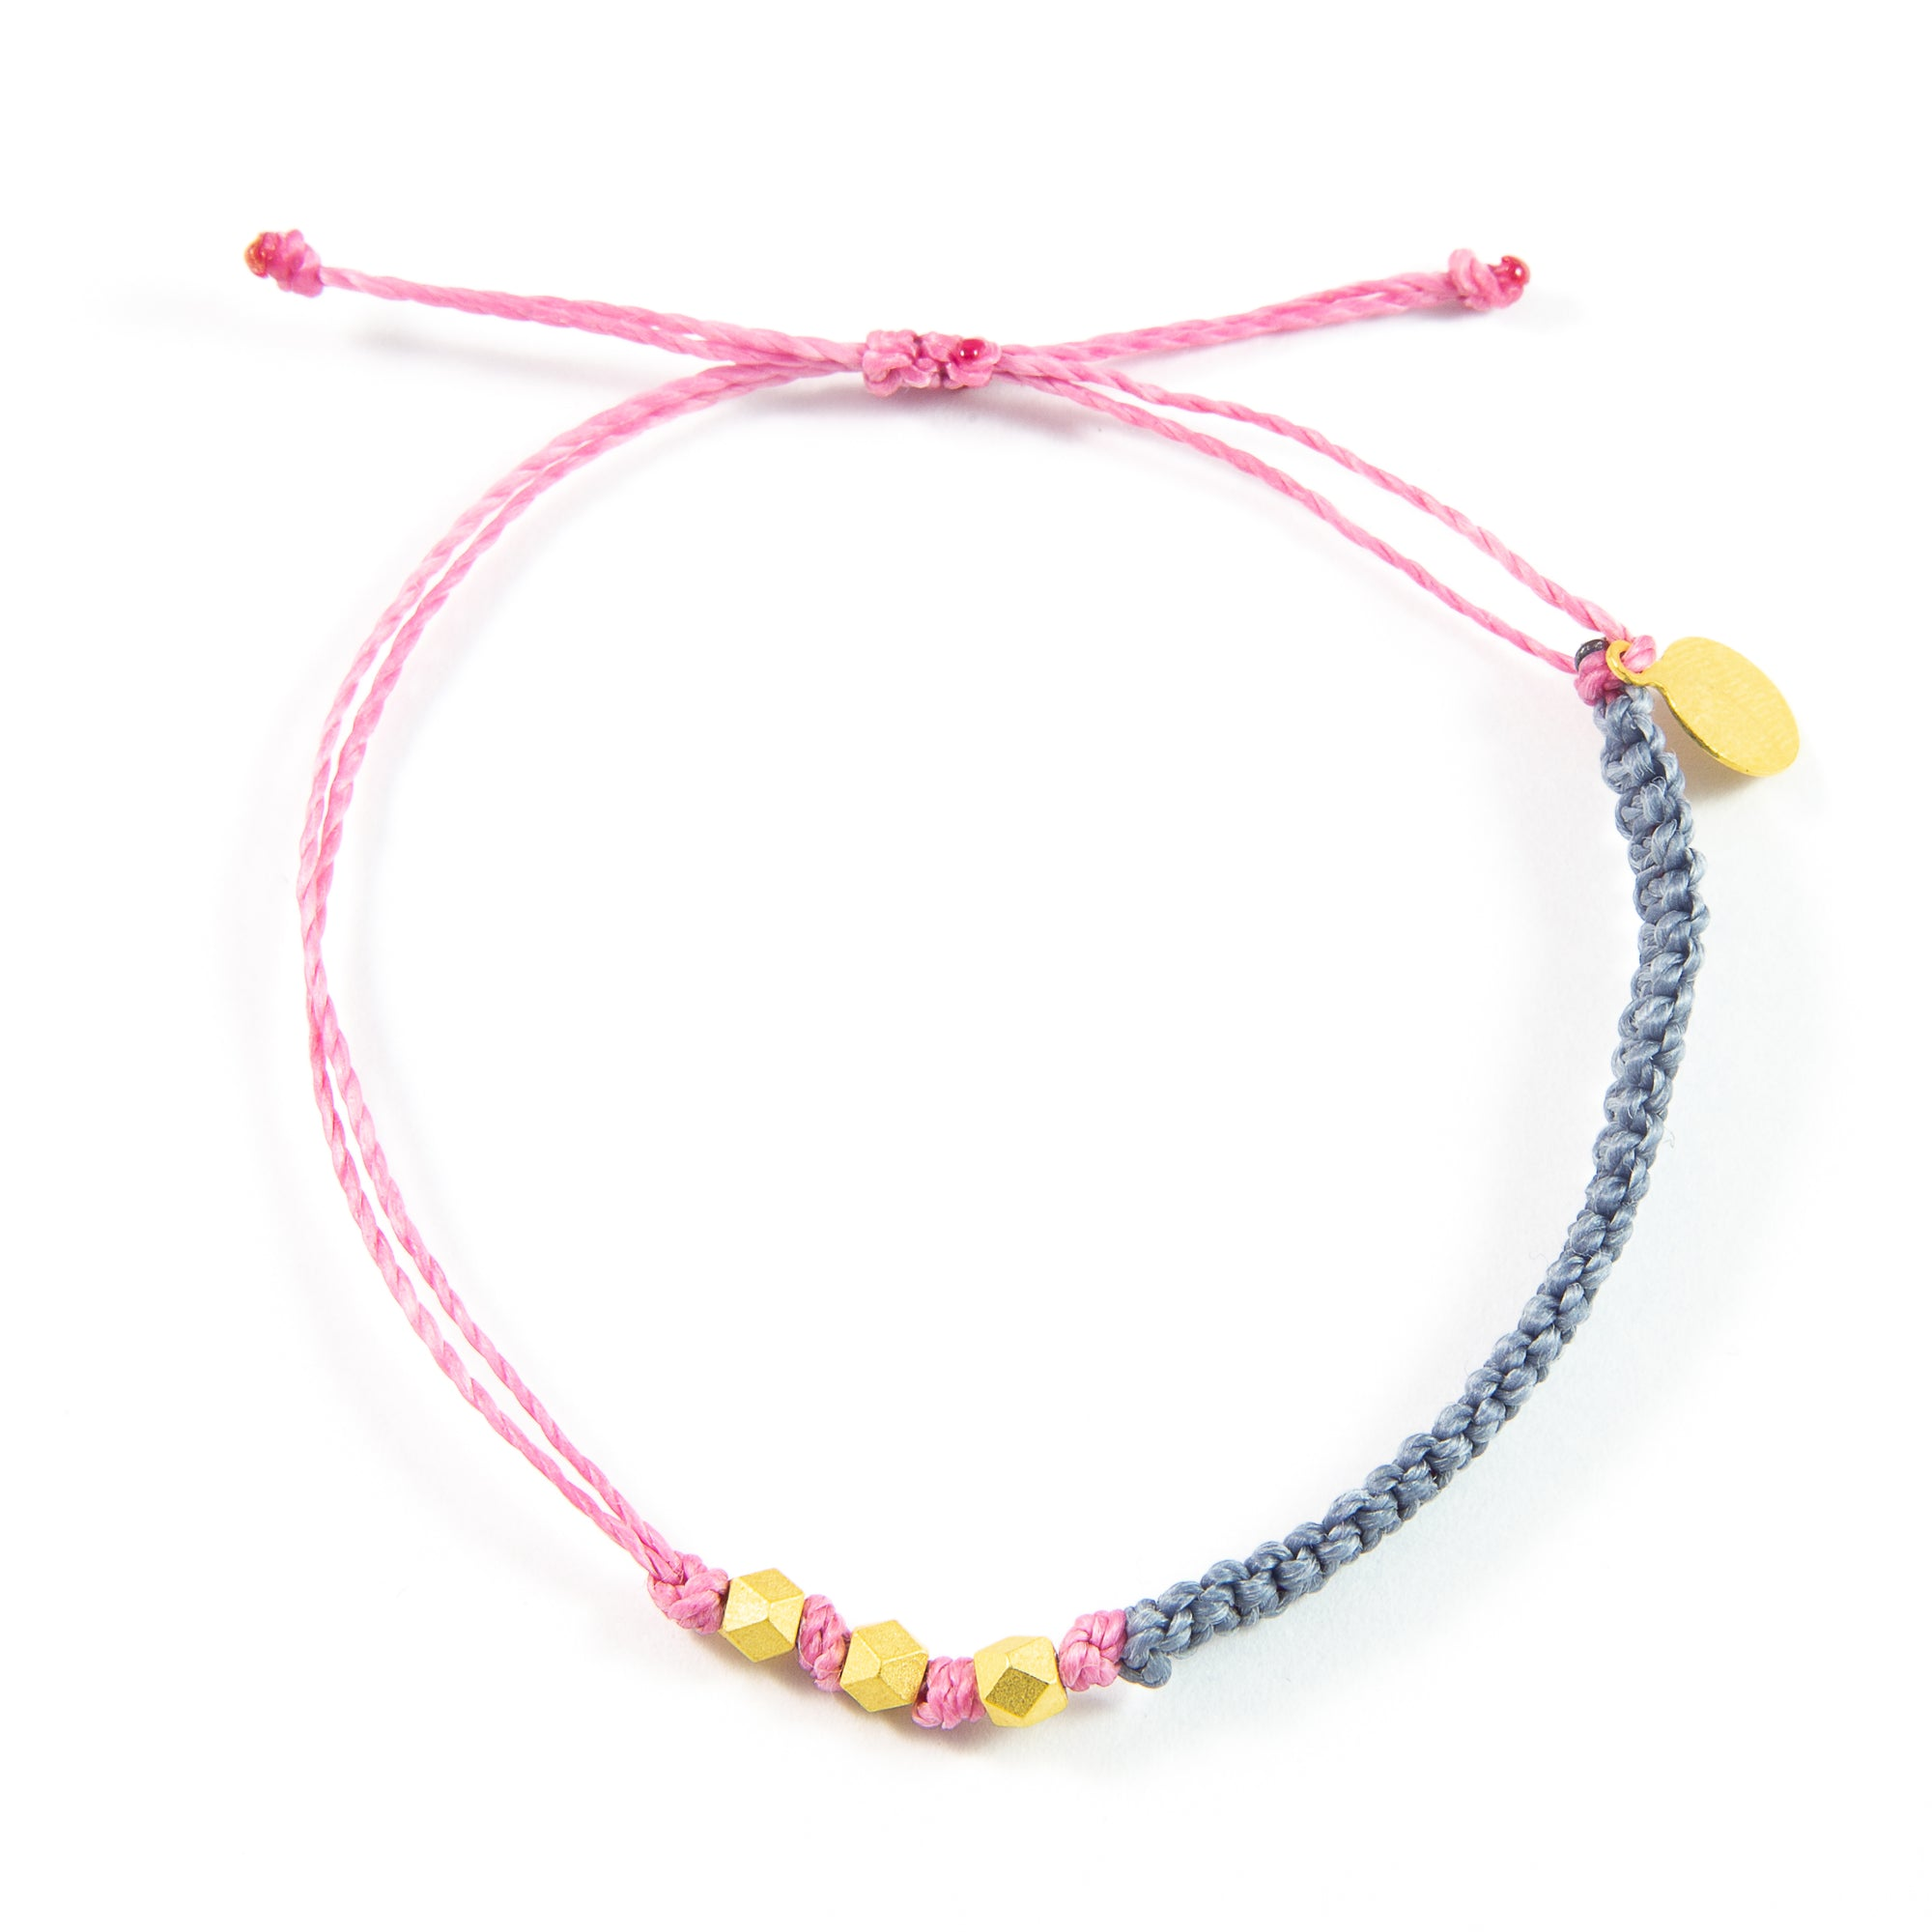 Denim & Rose Macrame Bracelet in Gold